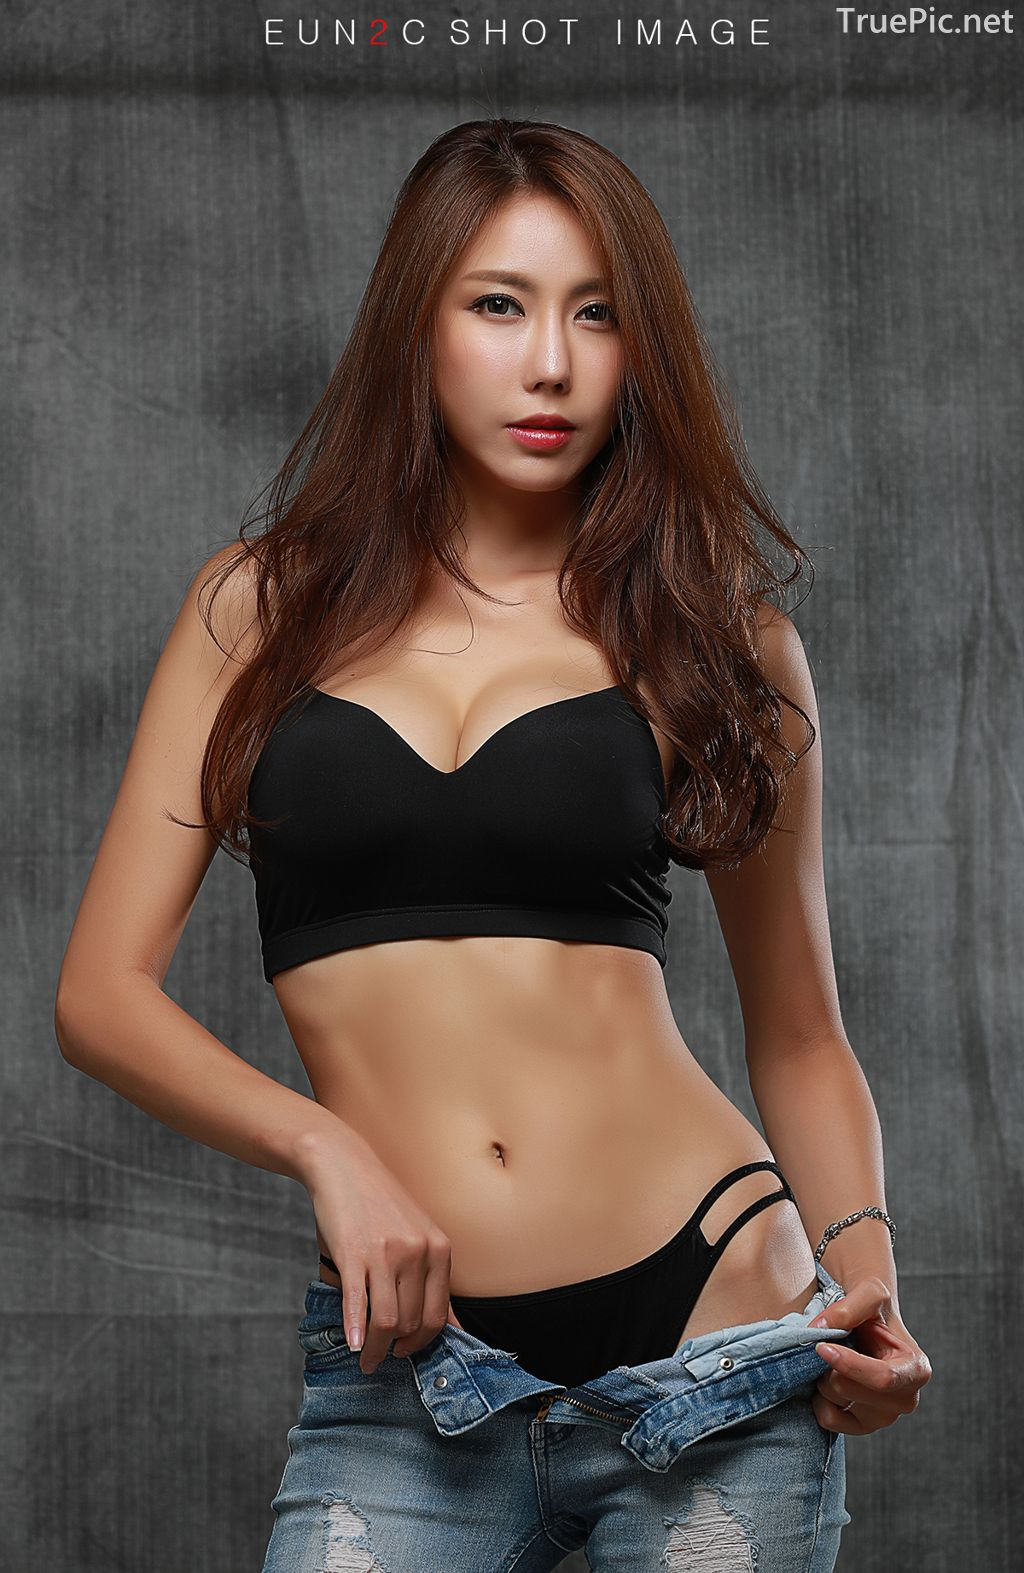 Image-Korean-model-Choi-Ye-Rok-Back-Lingerie-and-Jean-TruePic.net- Picture-5